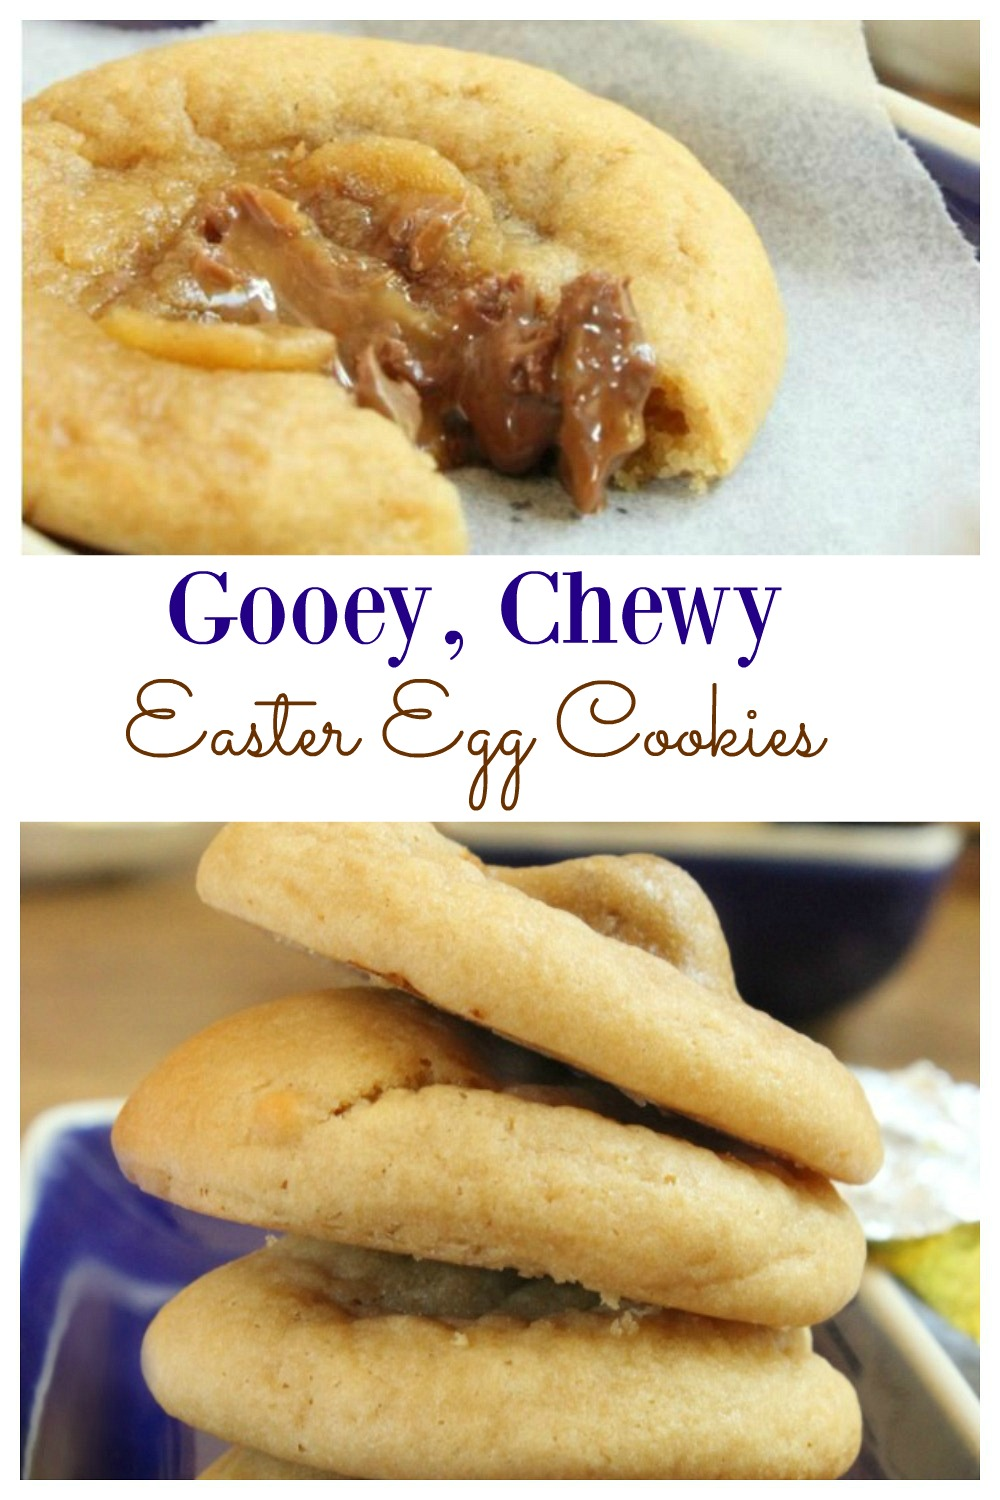 Gooey, Chewy Warm Easter Egg Cookies; served warm and cooked just right, these cookies are a sweet delight with a melted caramel chocolate center.  These cookies make an awesome dessert, afternoon snack and even a fantastic Easter gift.